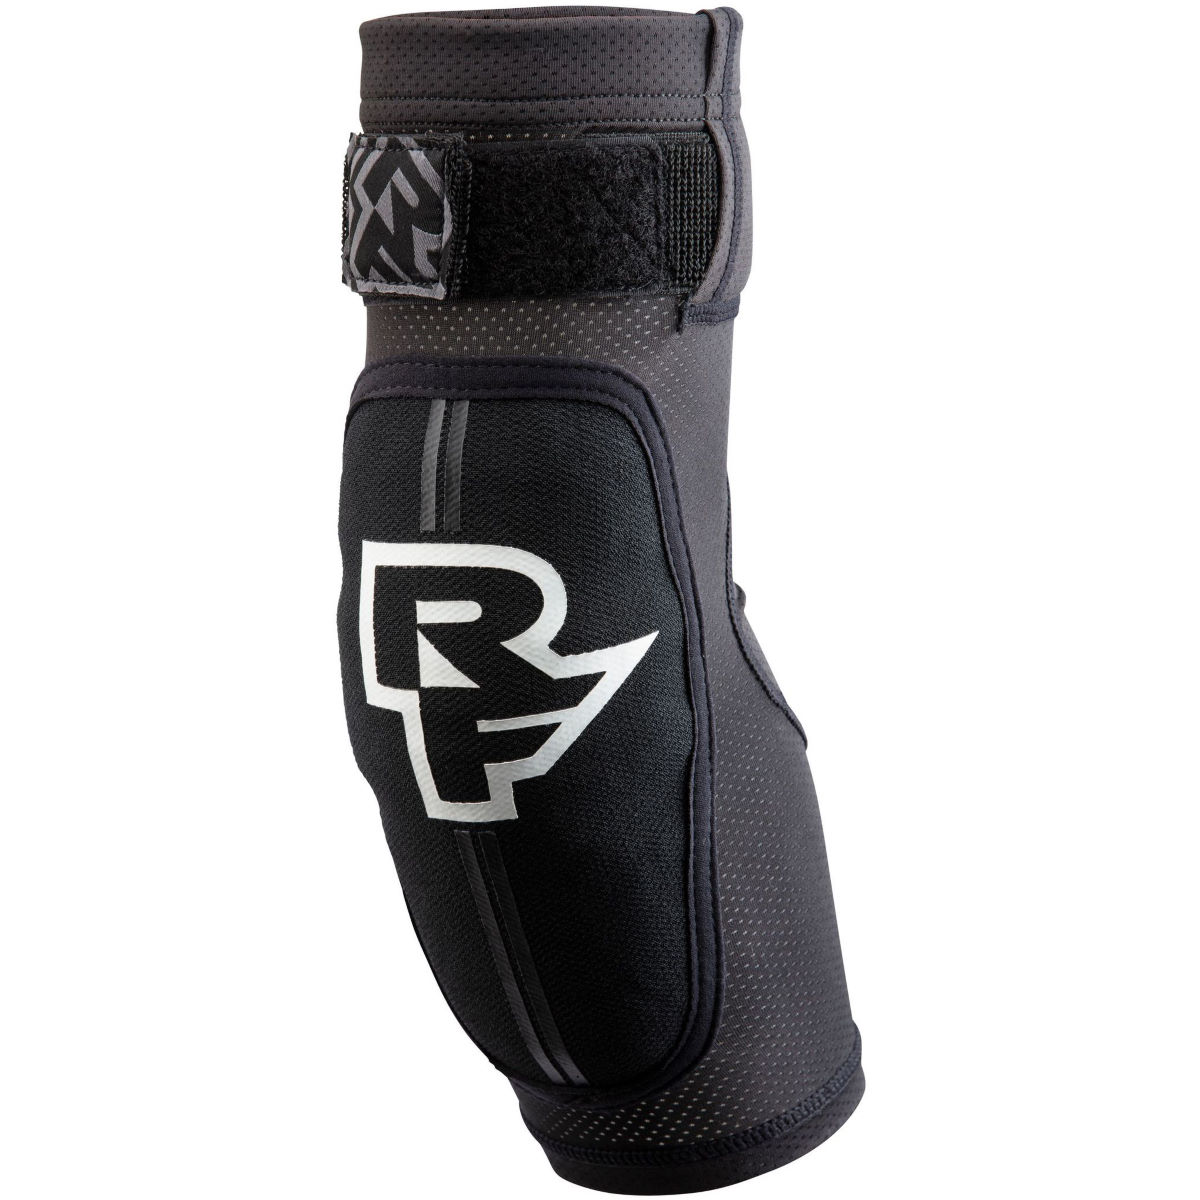 Race Face Indy Elbow Pads - S Stealth  Elbow Pads